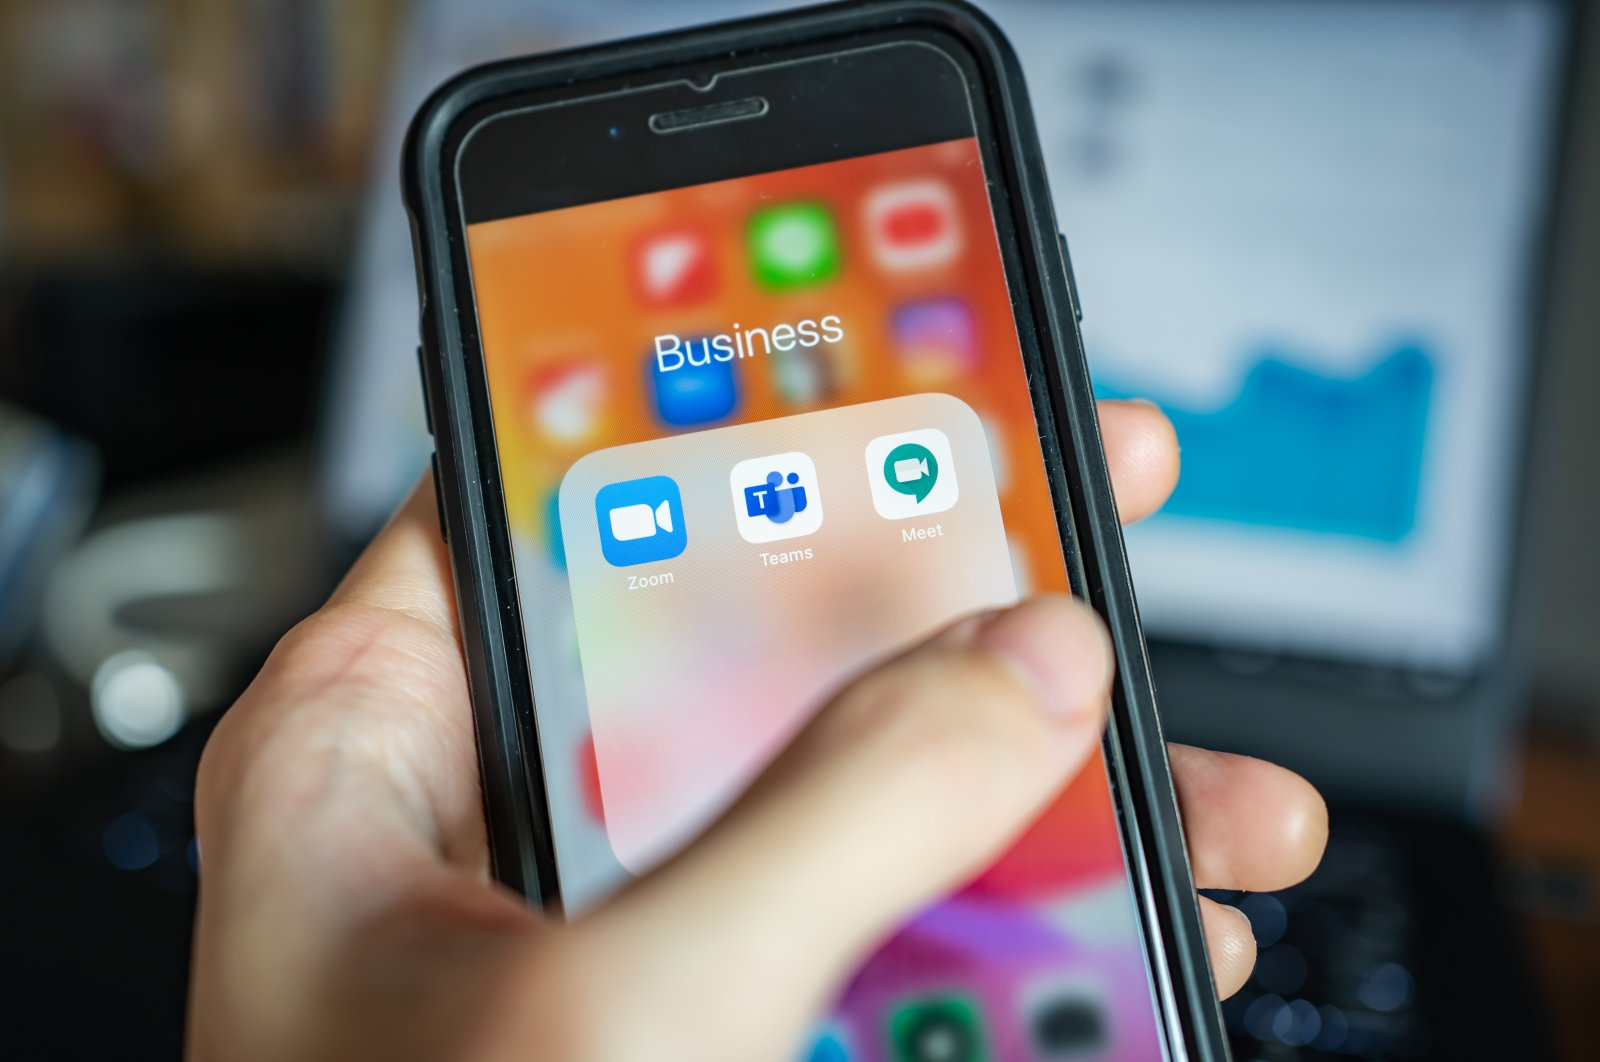 An iPhone 7 smartphone is seen with popular online meeting applications Zoom, Microsoft Teams and Google Meet, Bangkok, Thailand, April 1, 2020. (iStock Photo)